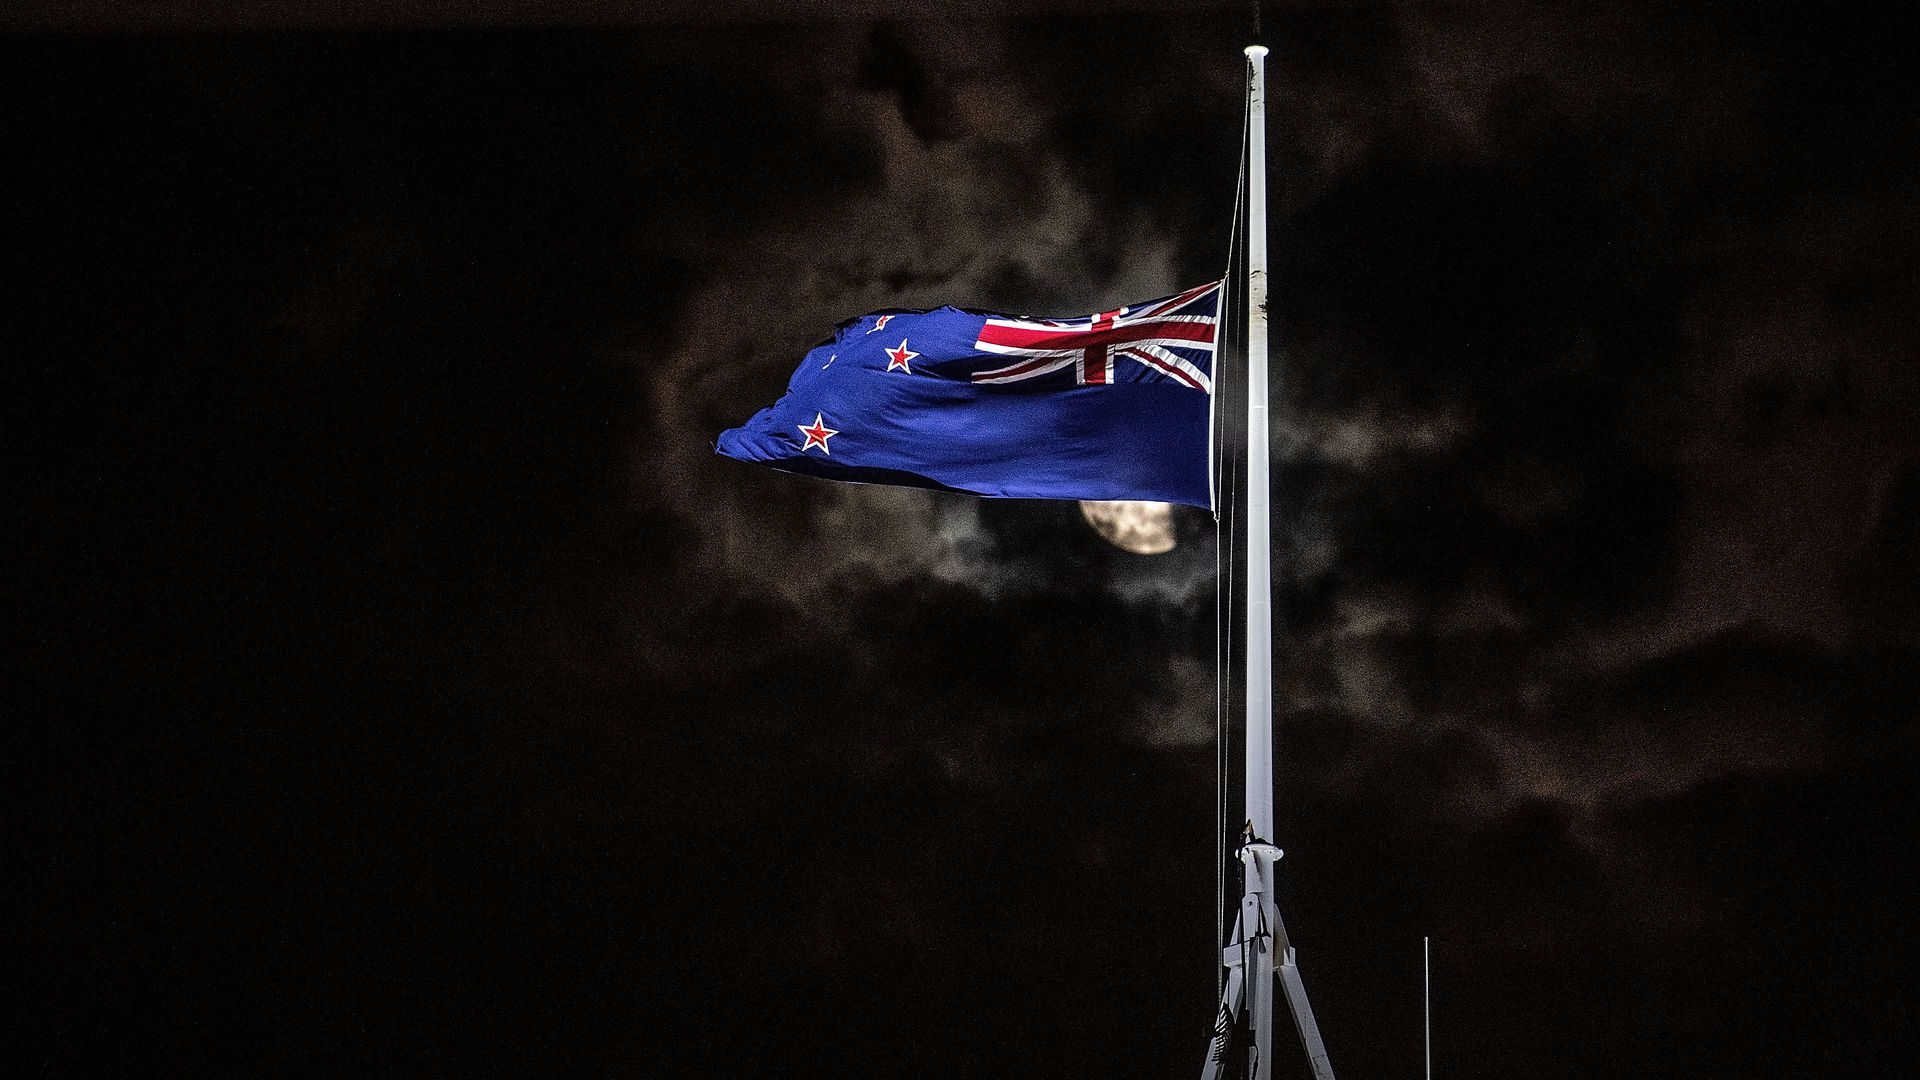 The New Zealand national flag is flown at half-mast on a Parliament building in Wellington on March 15, 2019, after a shooting incident in Christchurch.